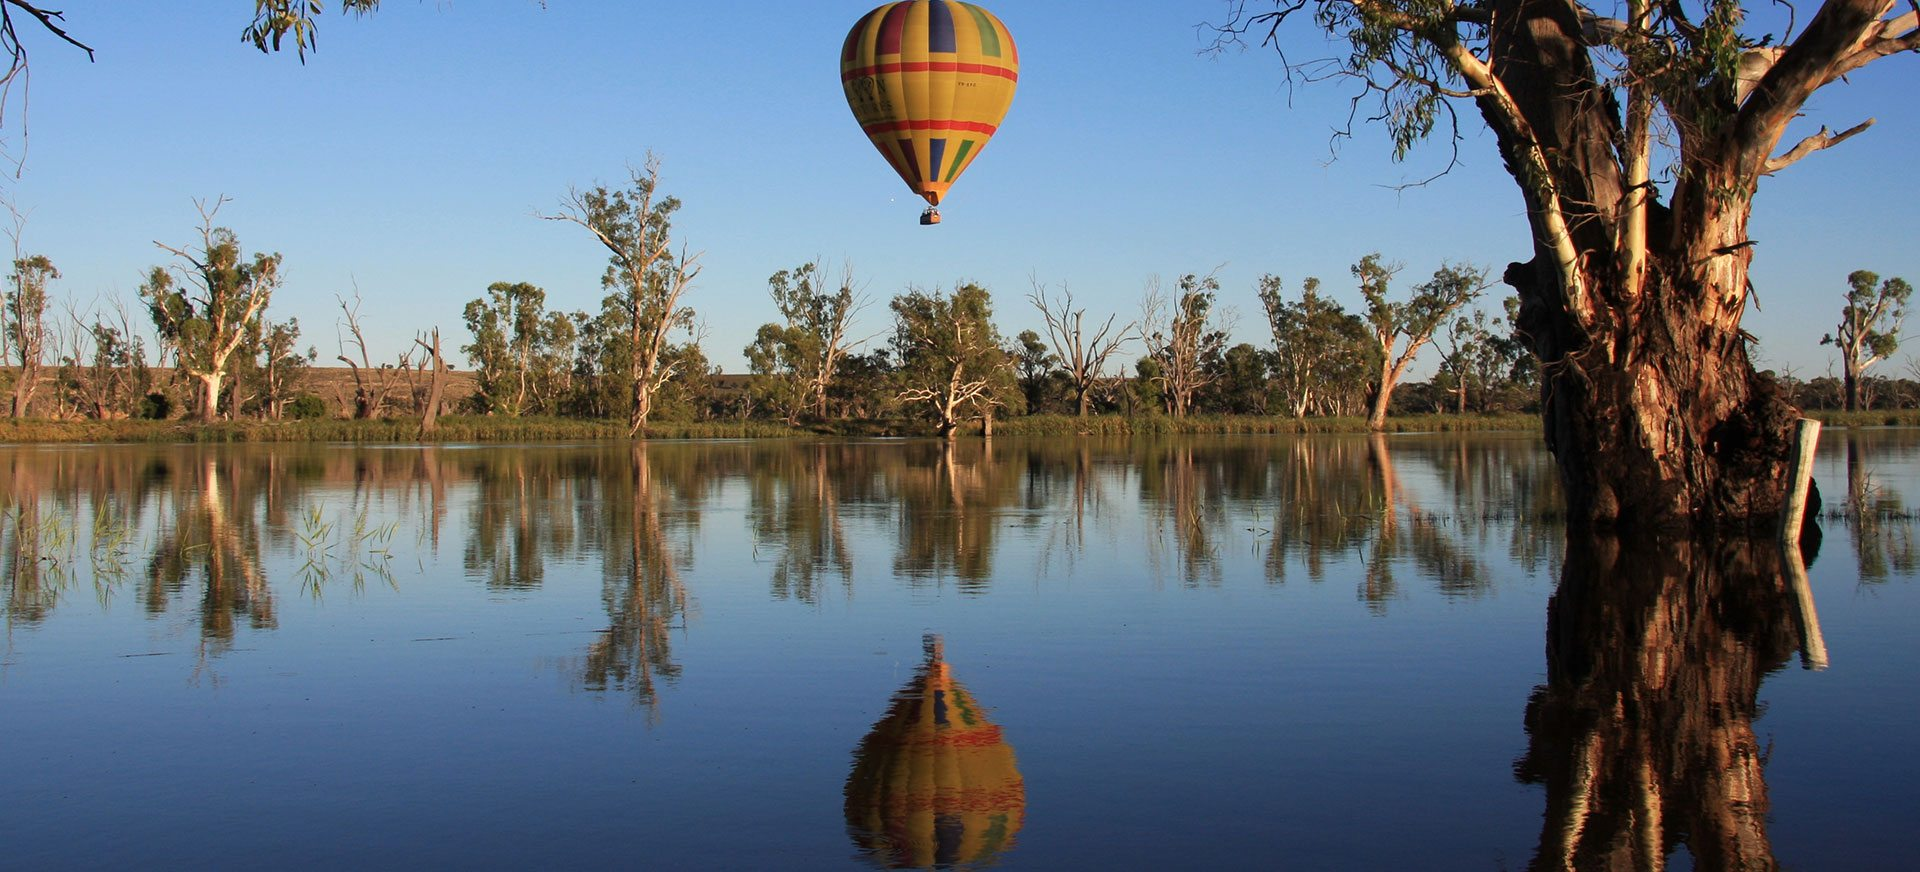 balloon-adventures-barossa-valley-hot-air-balloon-flights-over-the-river-murray-5